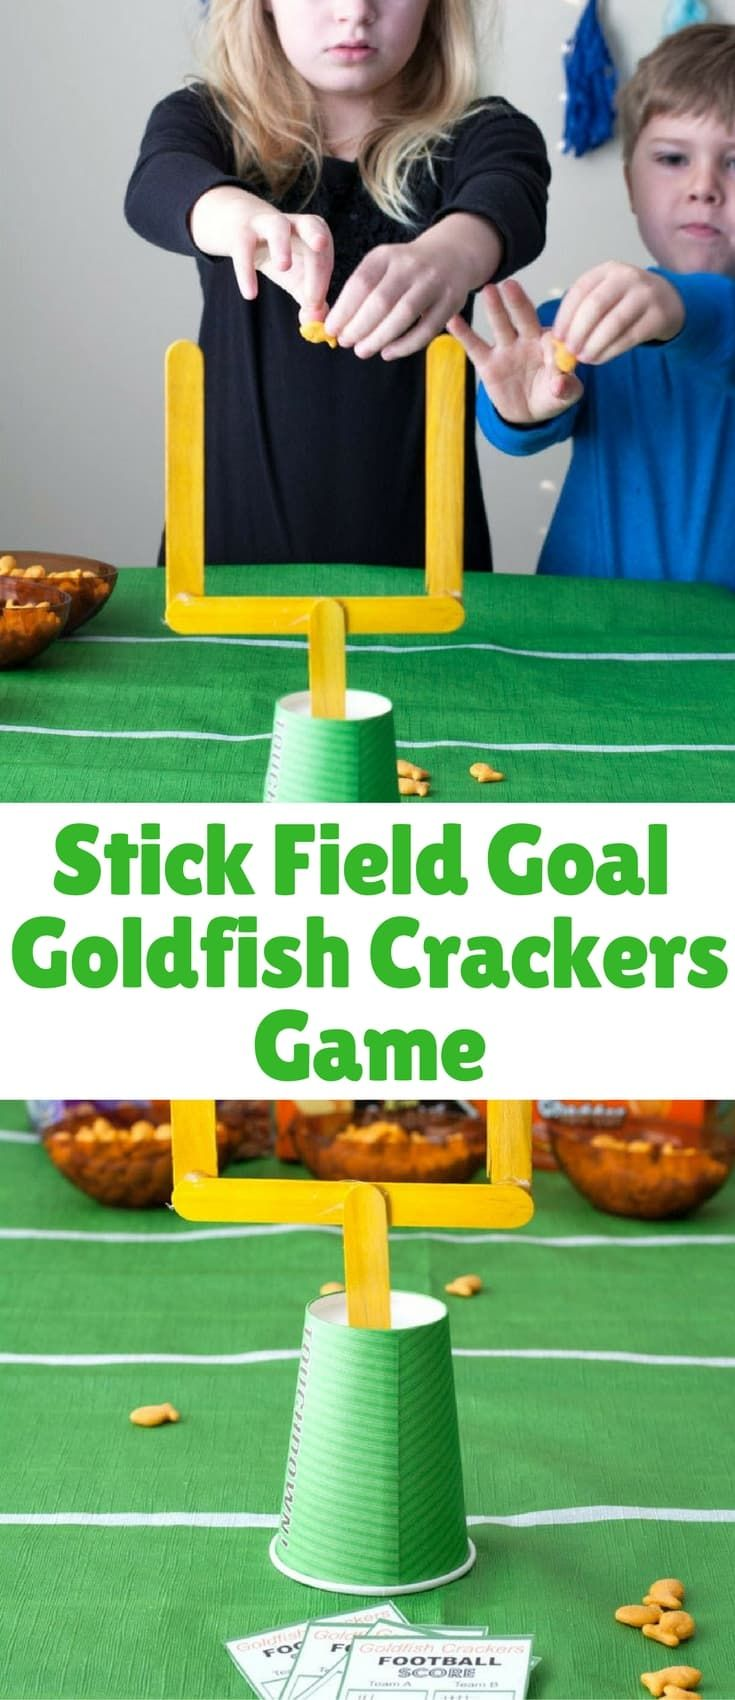 Game day can be fun for you and the kids with this easy game day craft stick field goal Goldfish® crackers game.